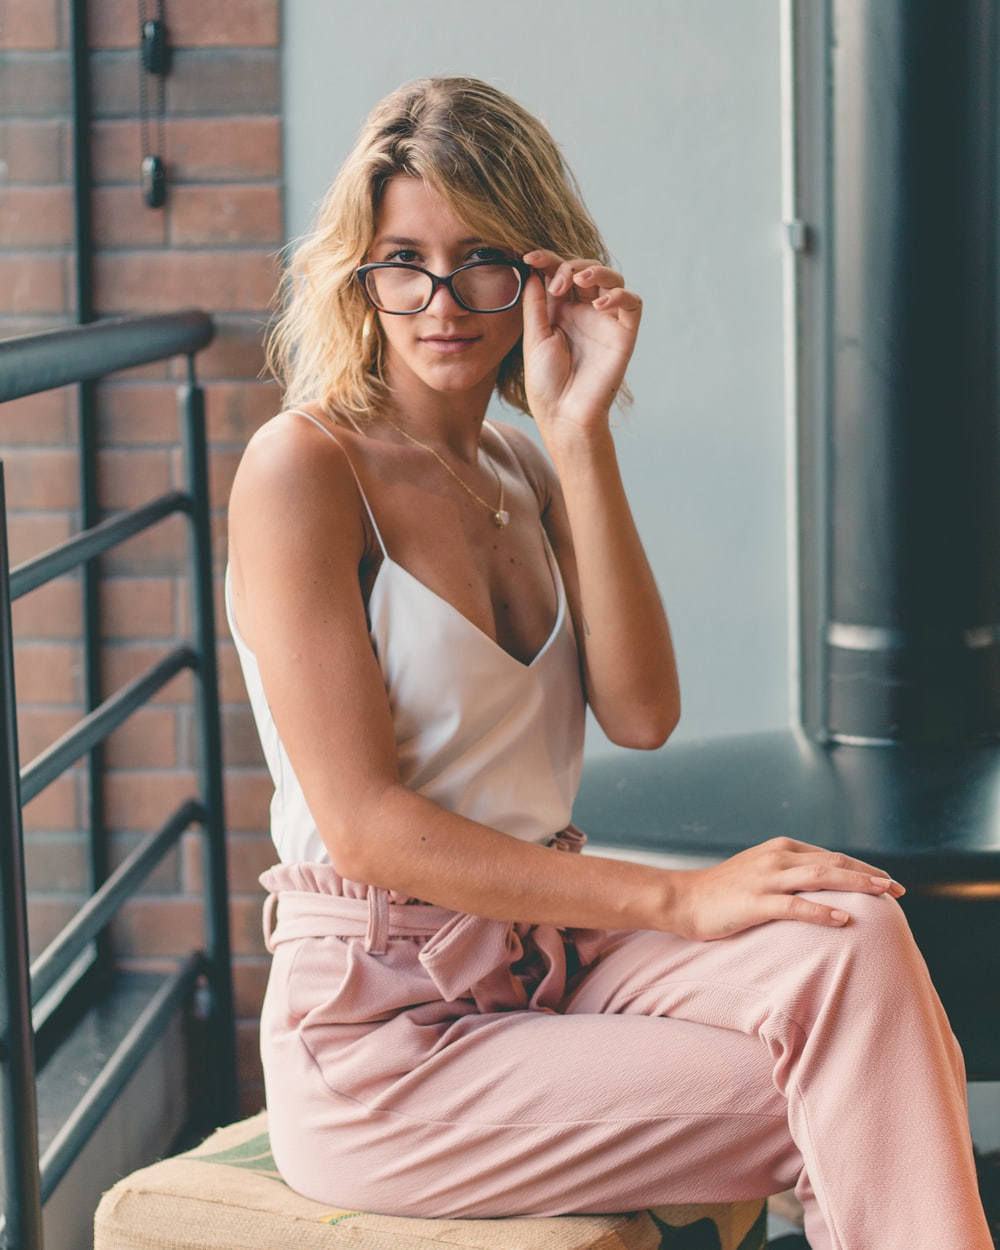 woman in eyeglasses,white spaghetti strap v-neck top and peach-colored drawstring pants